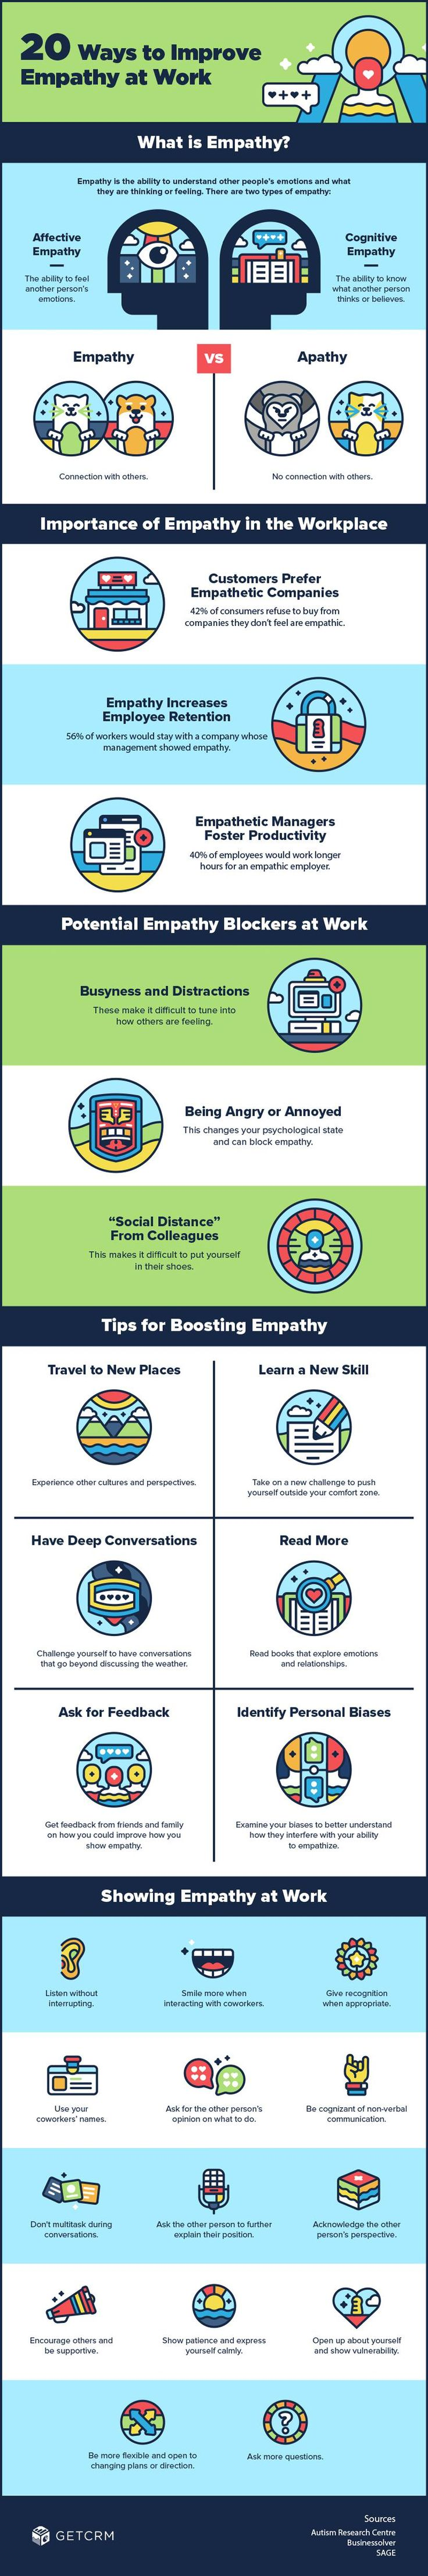 20 Ways to Improve Empathy At Work #Infographic #Empathy